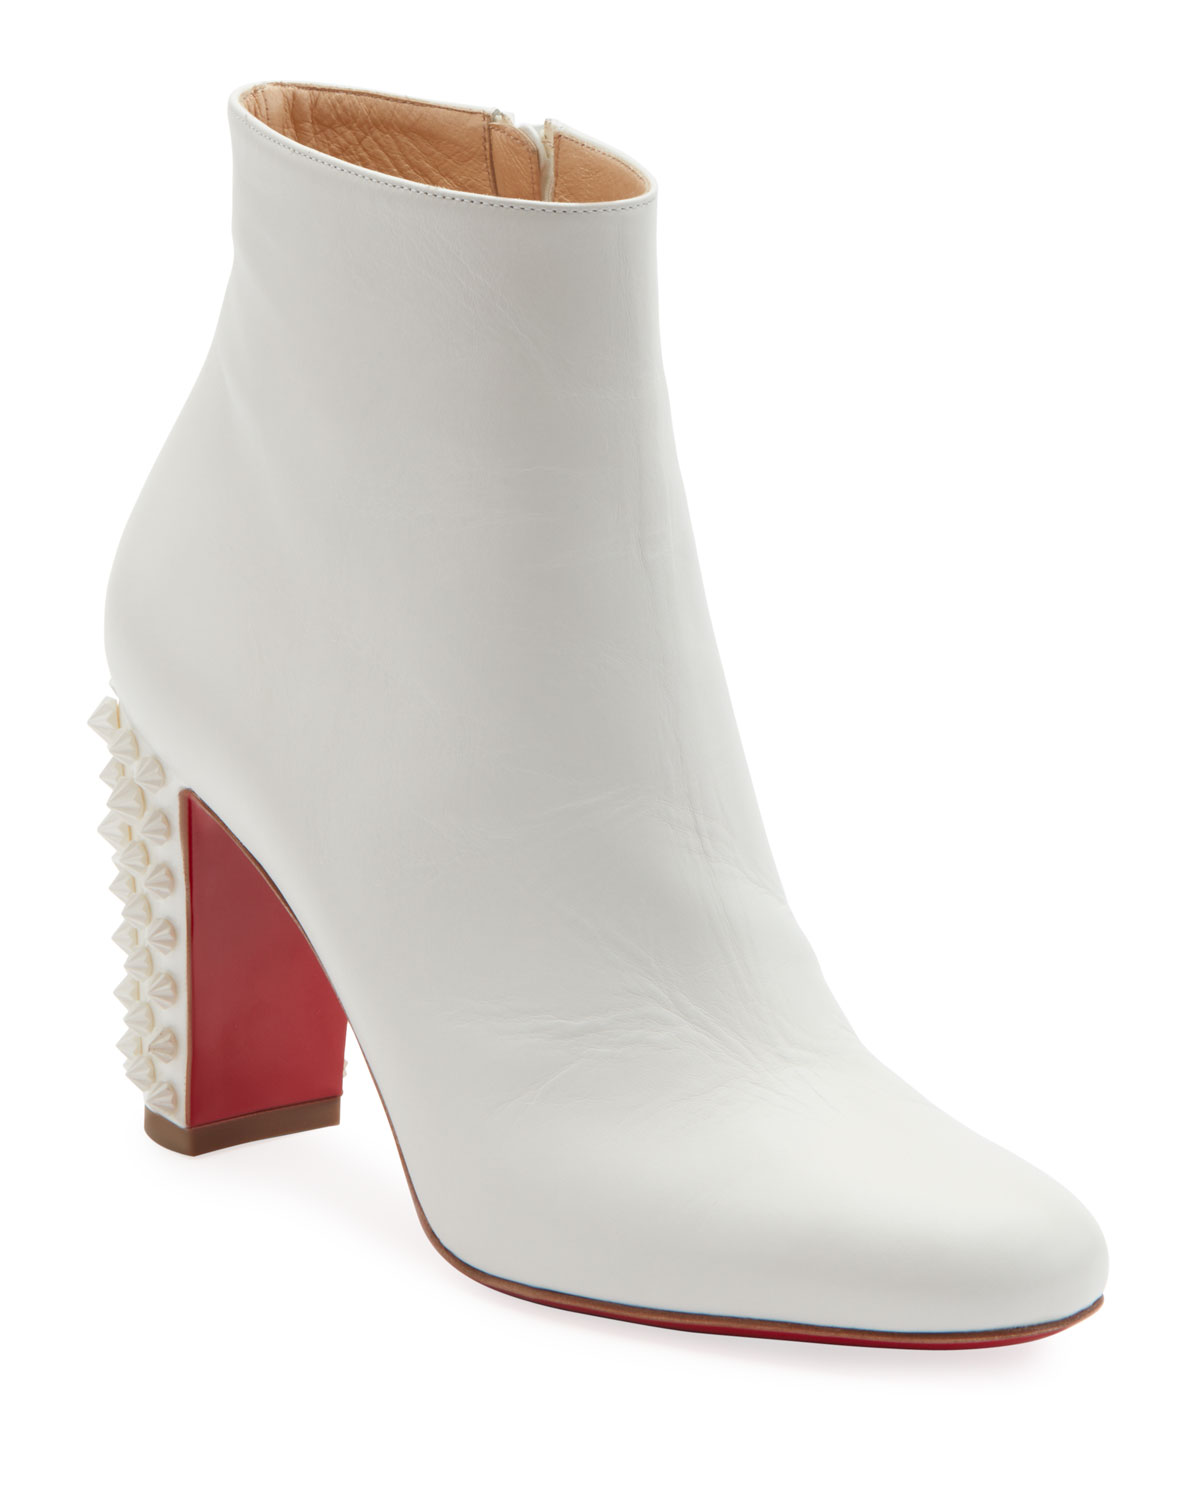 e946a2a2bfb Suzi Folk Red Sole Booties